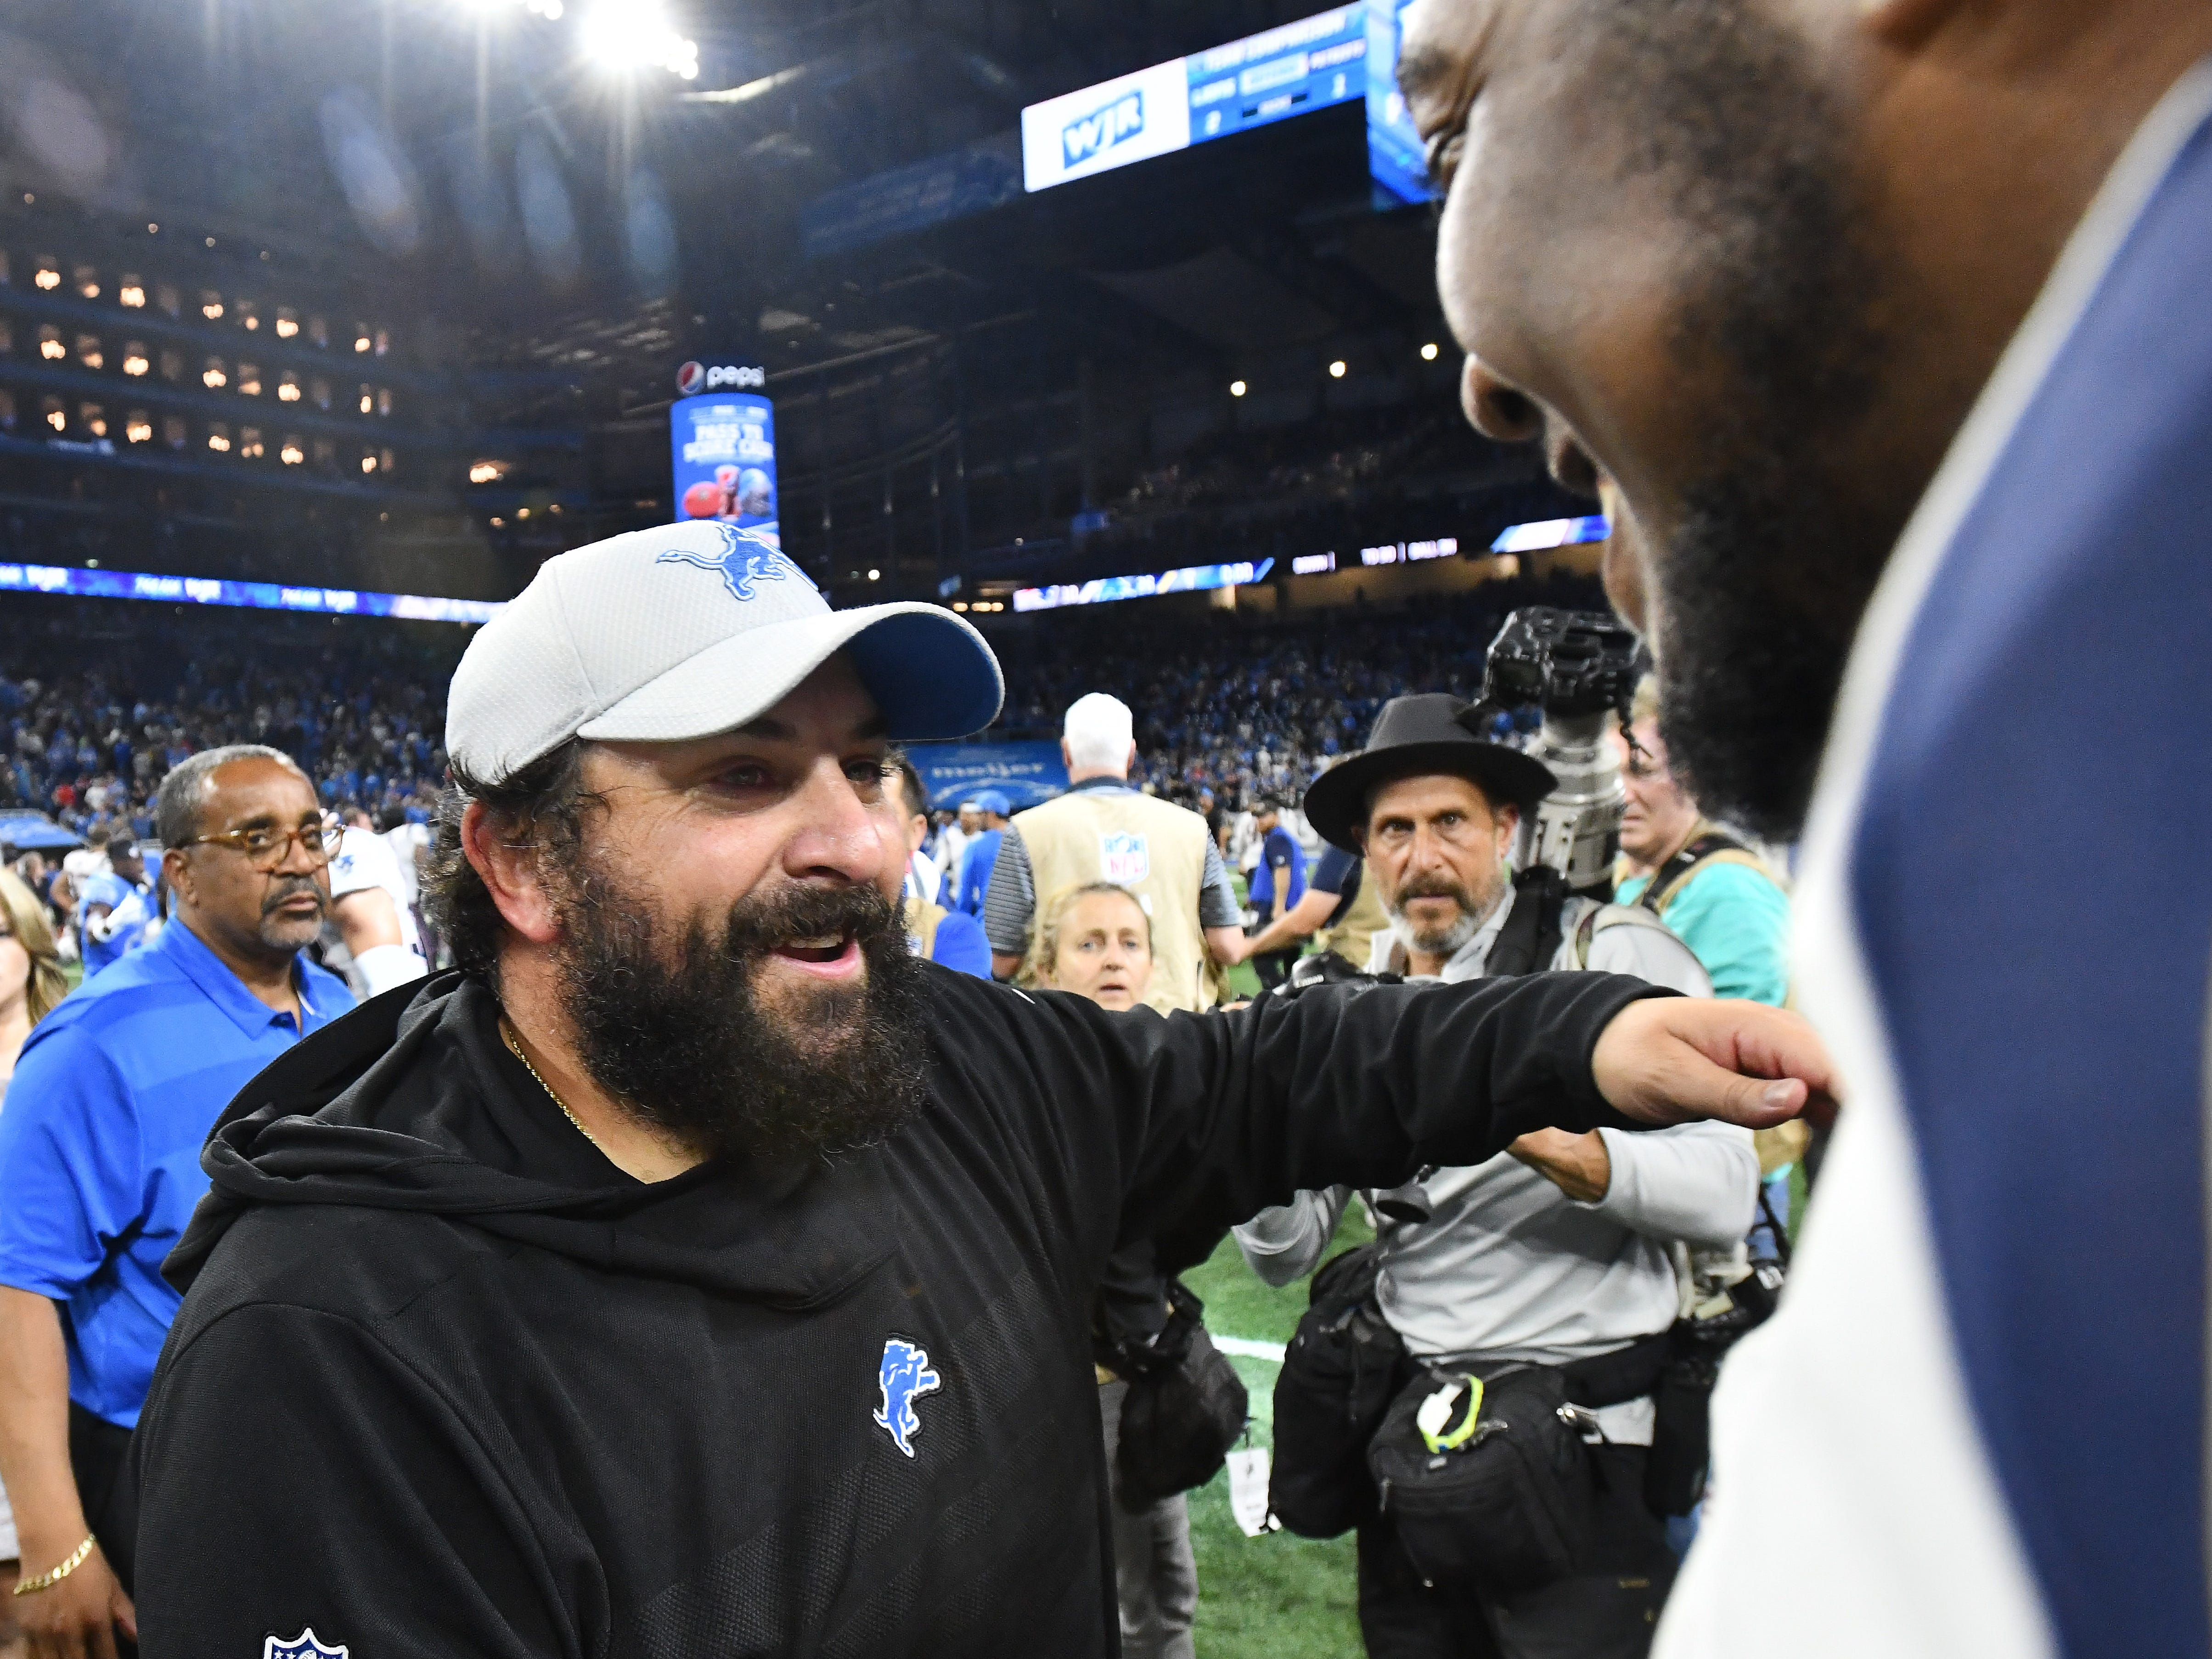 Lions head coach Matt Patricia hugs one of his former players, Patriots' Adam Butler on the field after the Detroit victory.